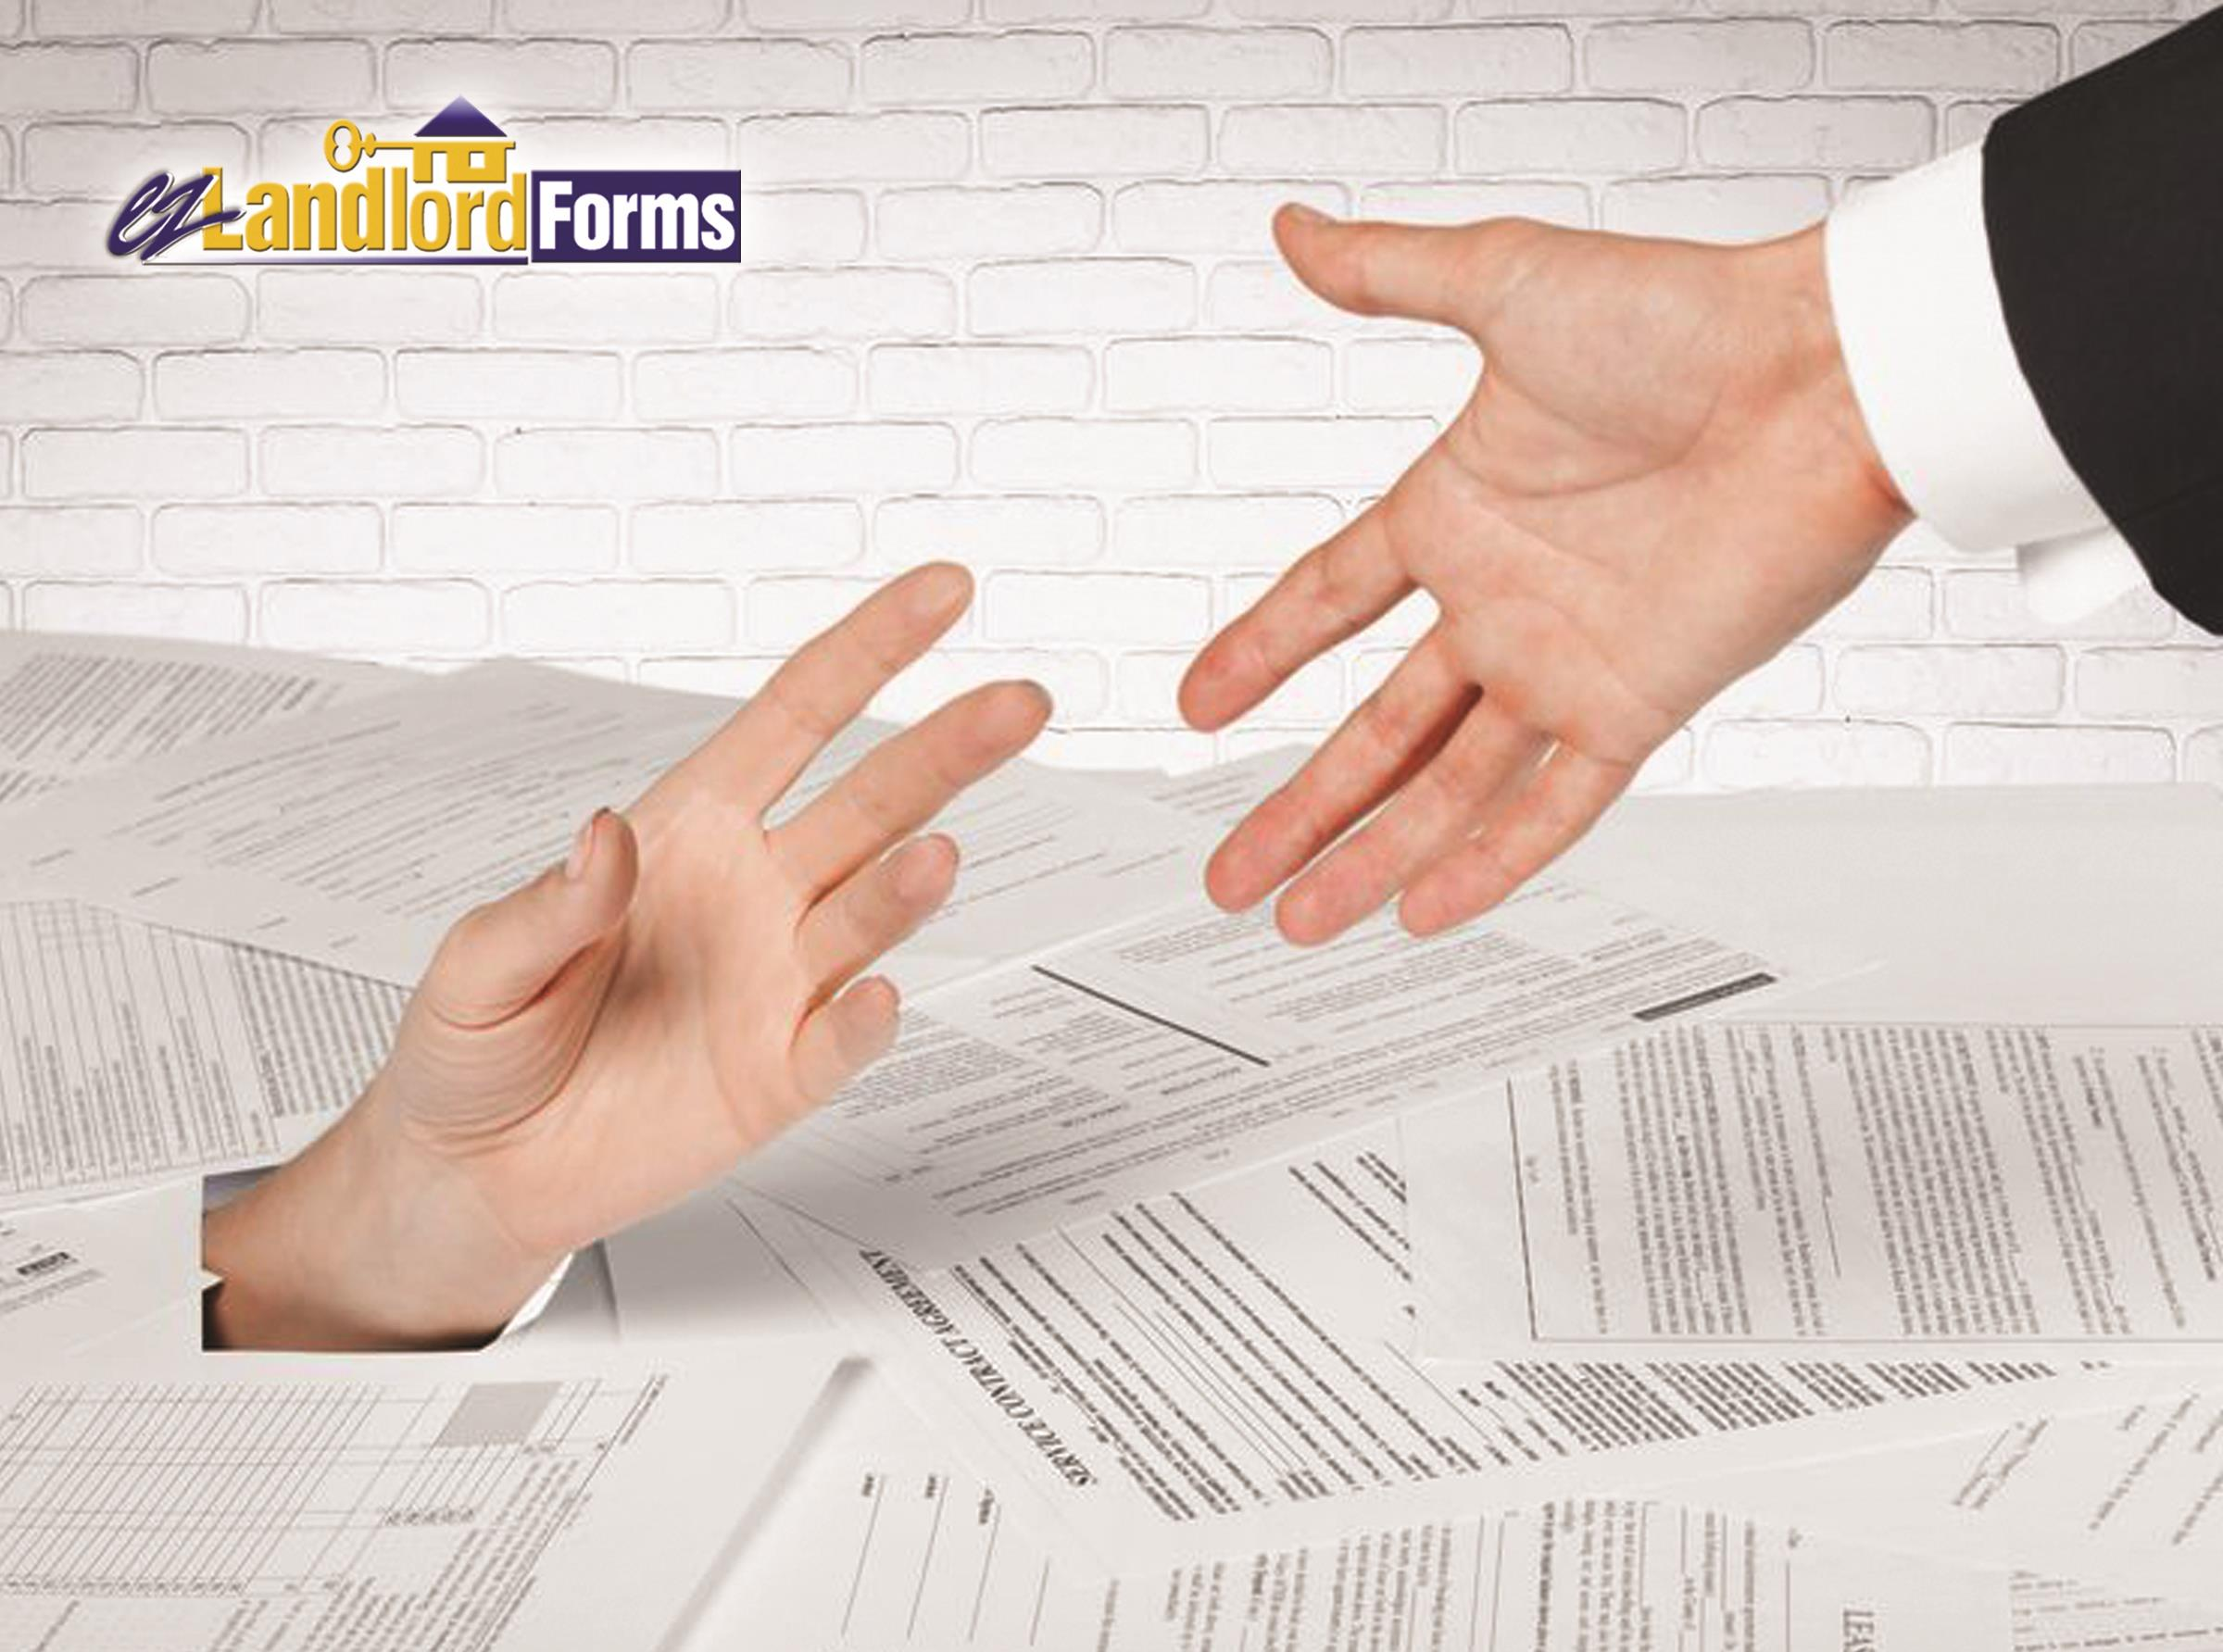 How to Decide Whether to Hire a CPA or Use a Tax Program?